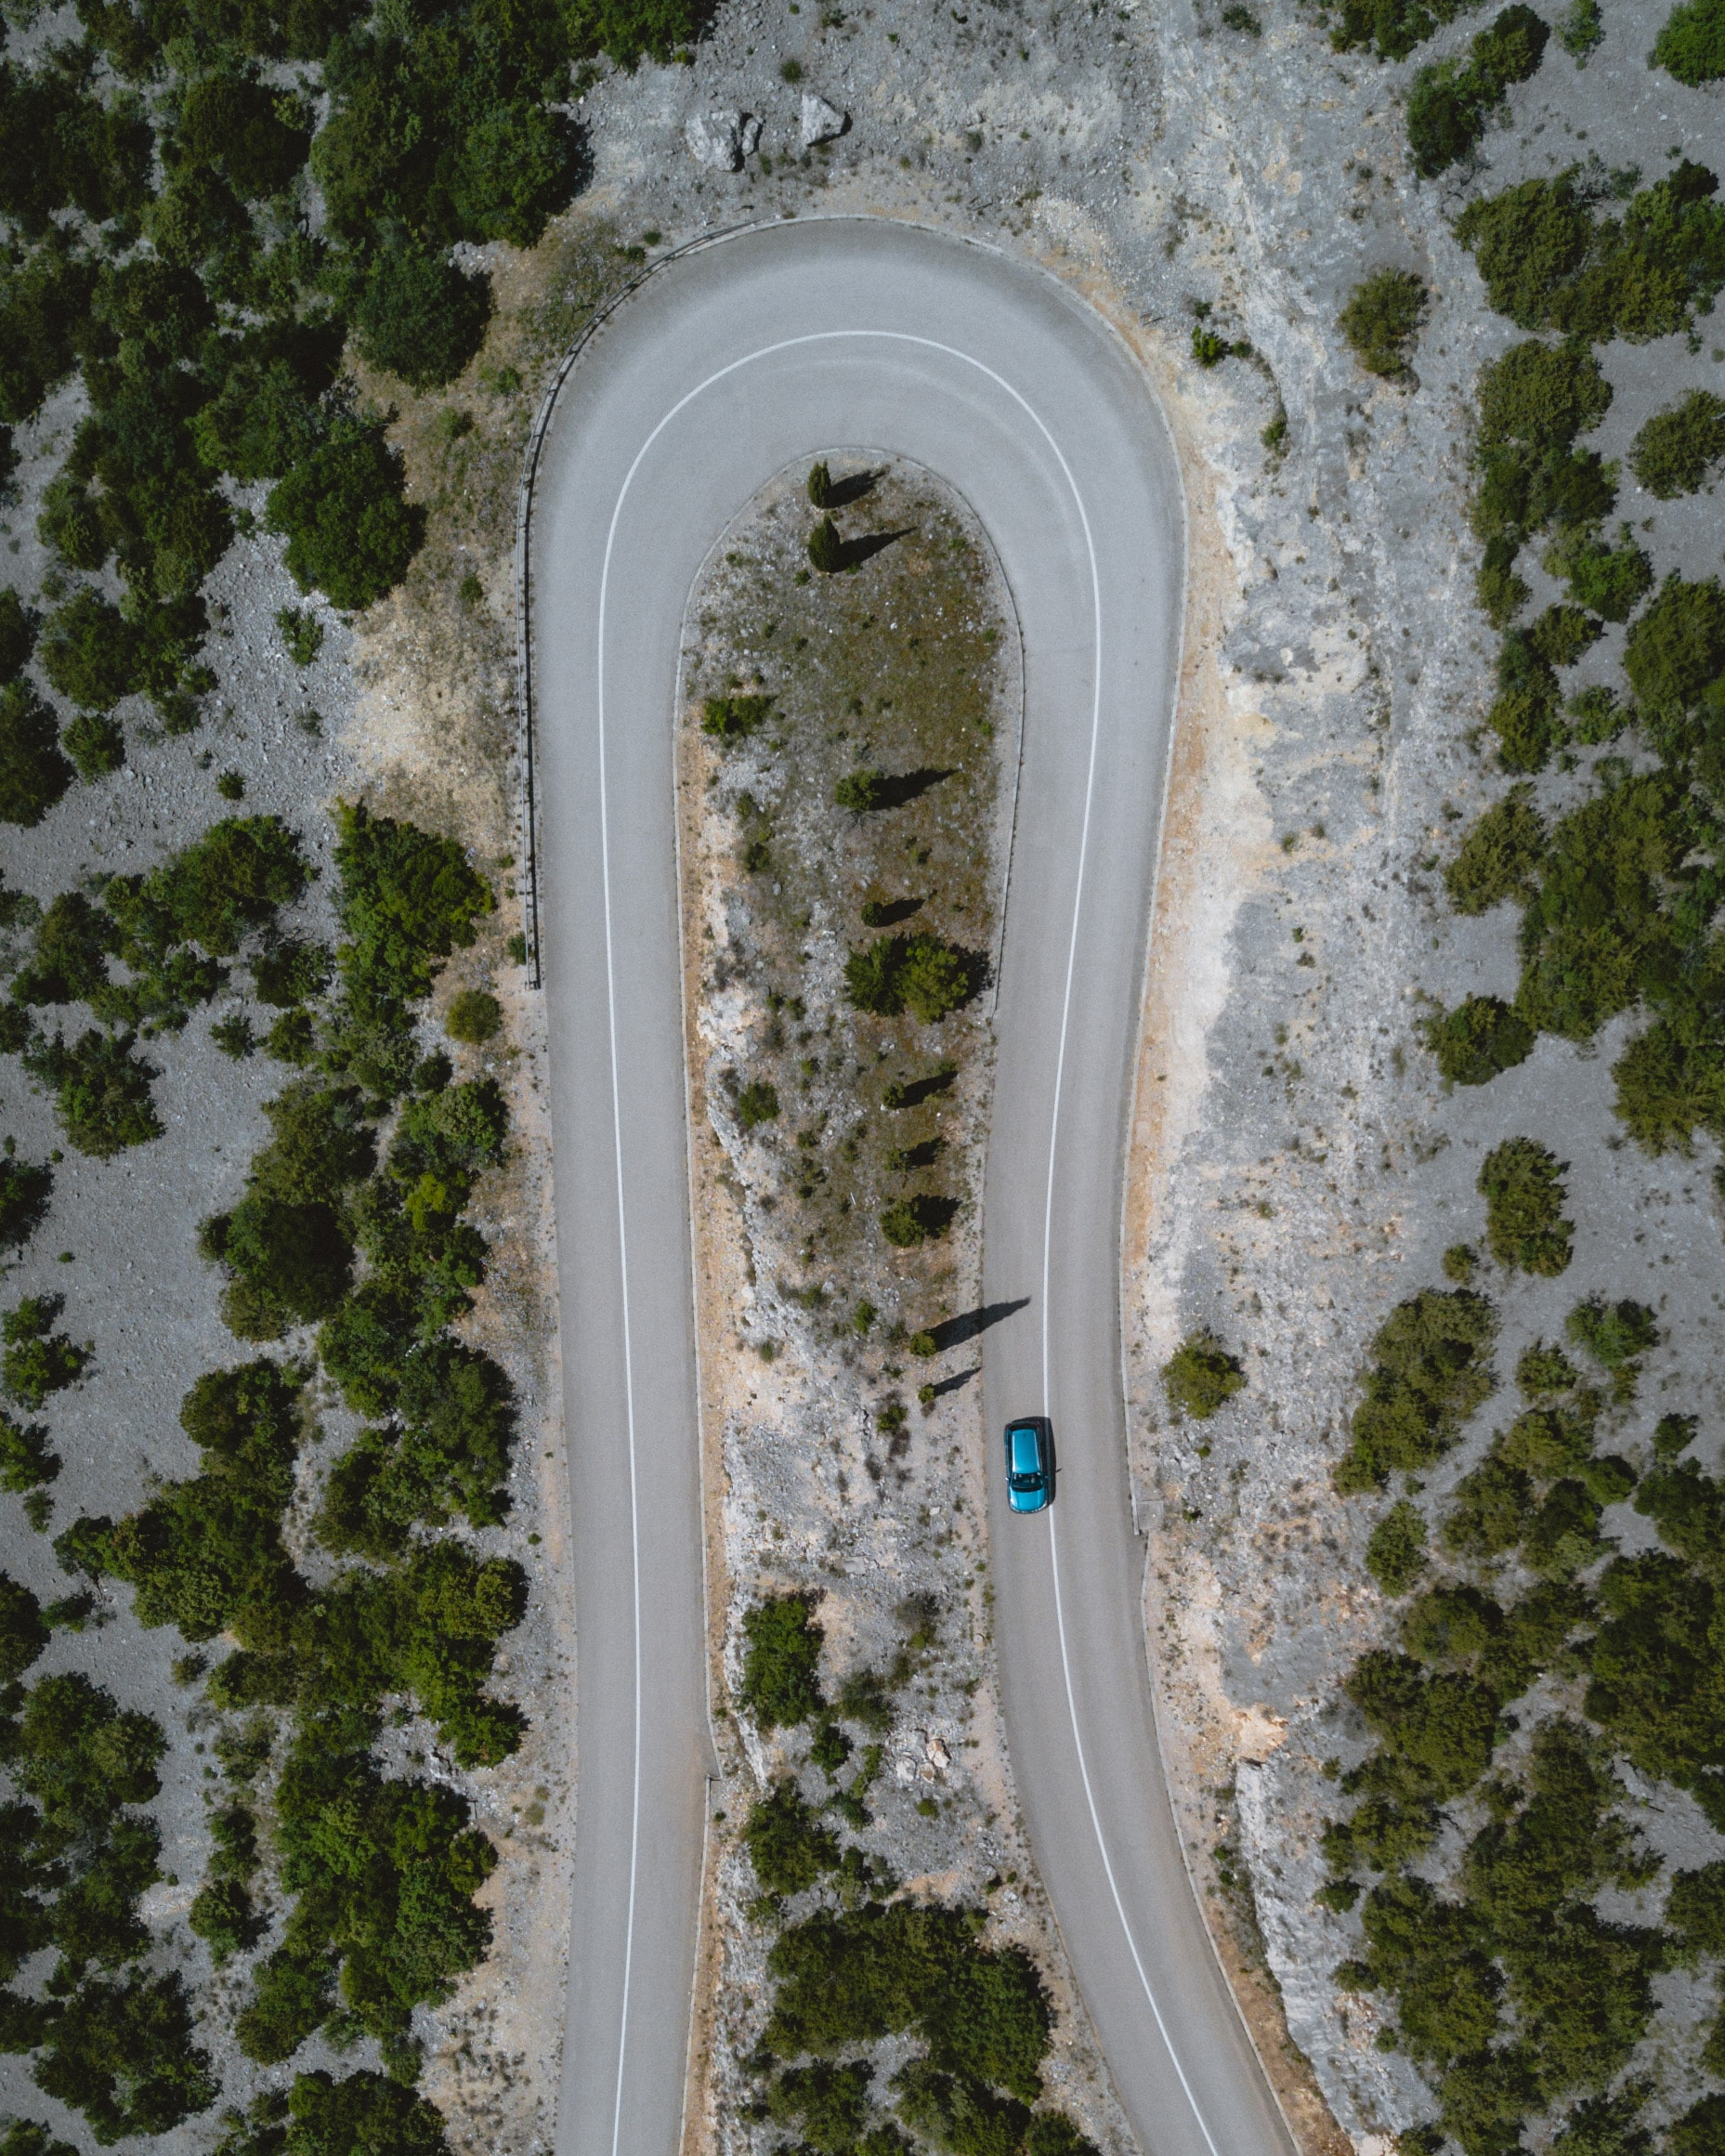 aerial view of car passing through road surrounded by trees